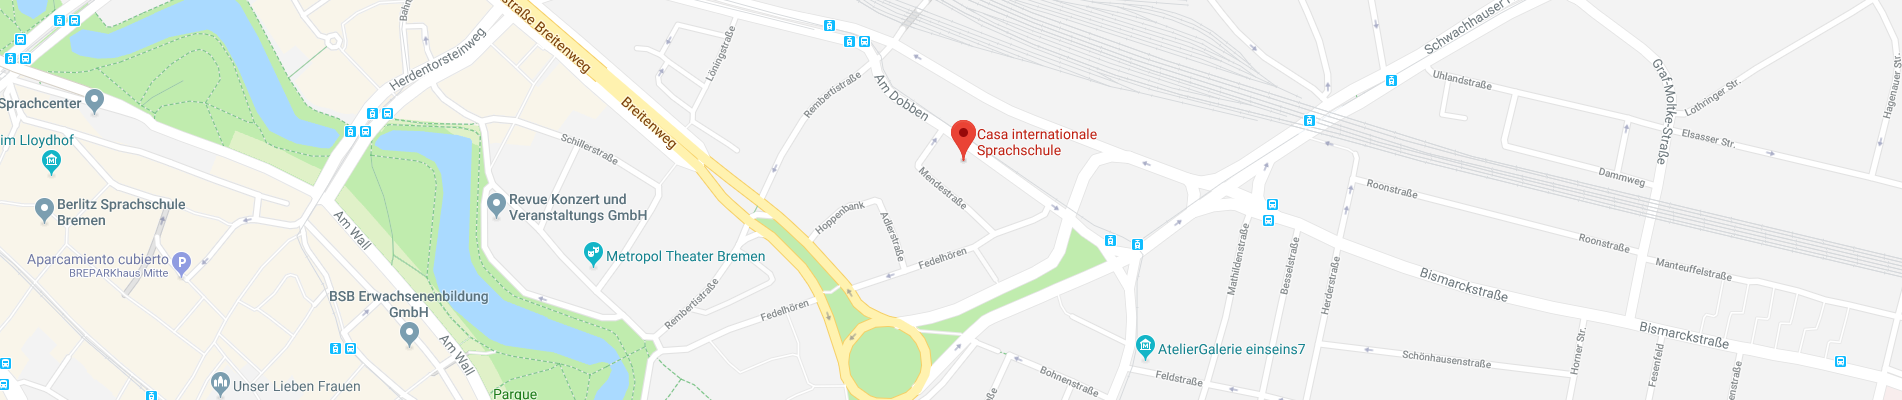 Mapa de Casa internationale Sprachschule